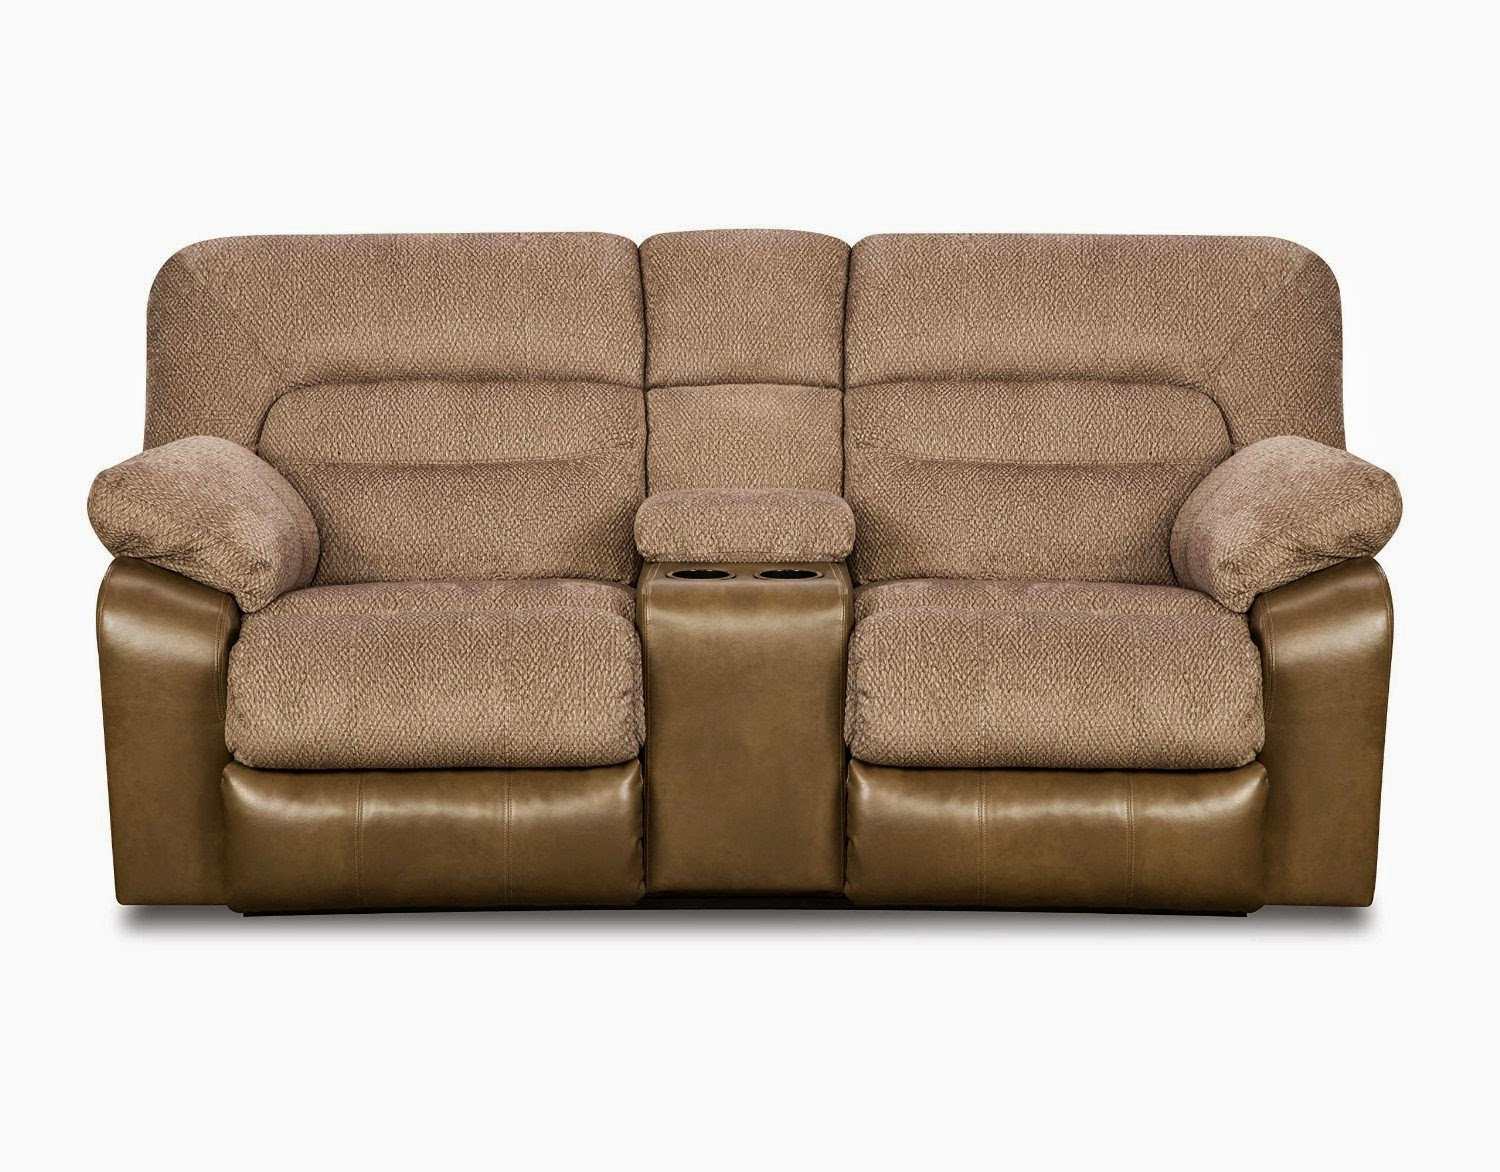 best sectional sofas for the money can you mix leather sofa with fabric chairs reclining simmons